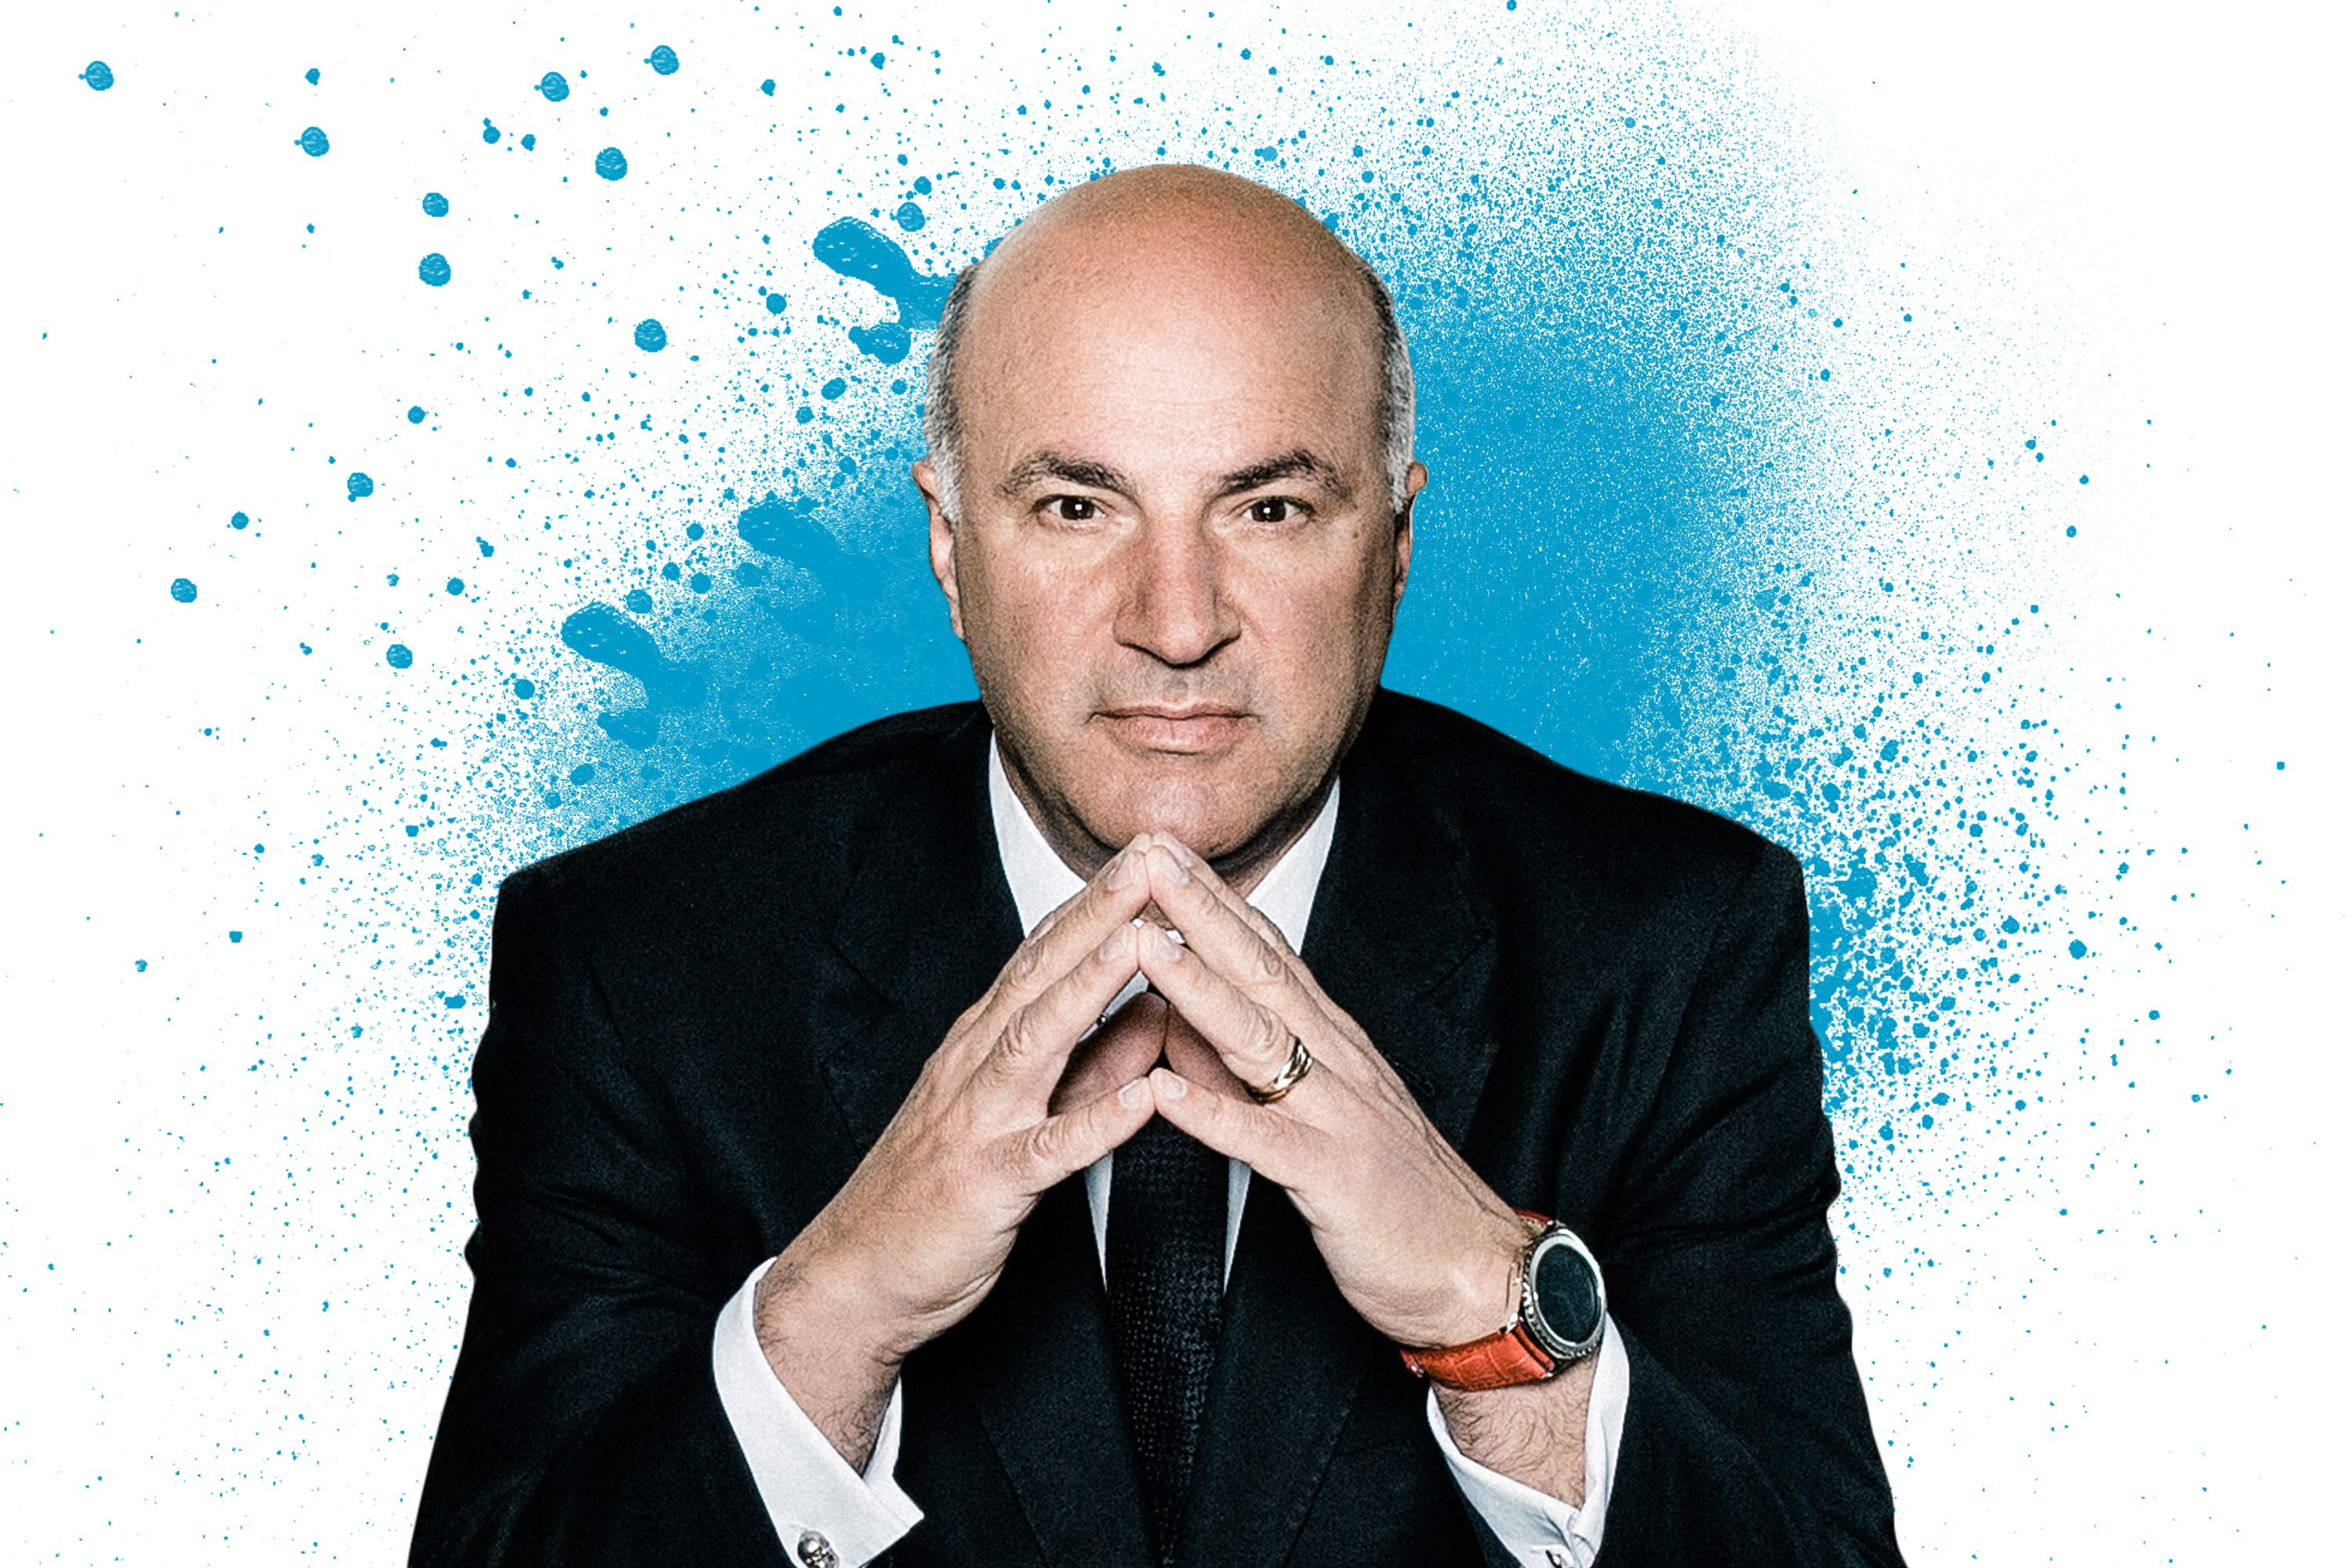 kevin-oleary